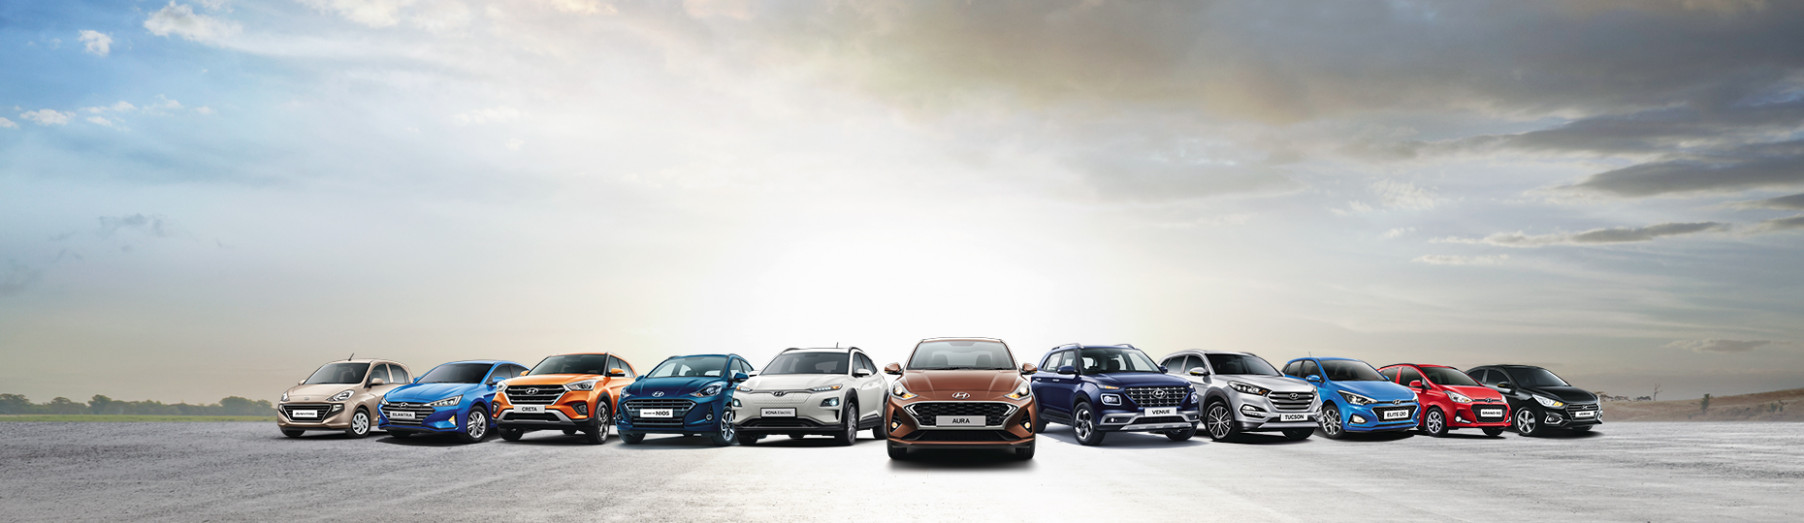 Check out latest Special Offers on car | Hyundai Motor India - hyundai july 2020 offers